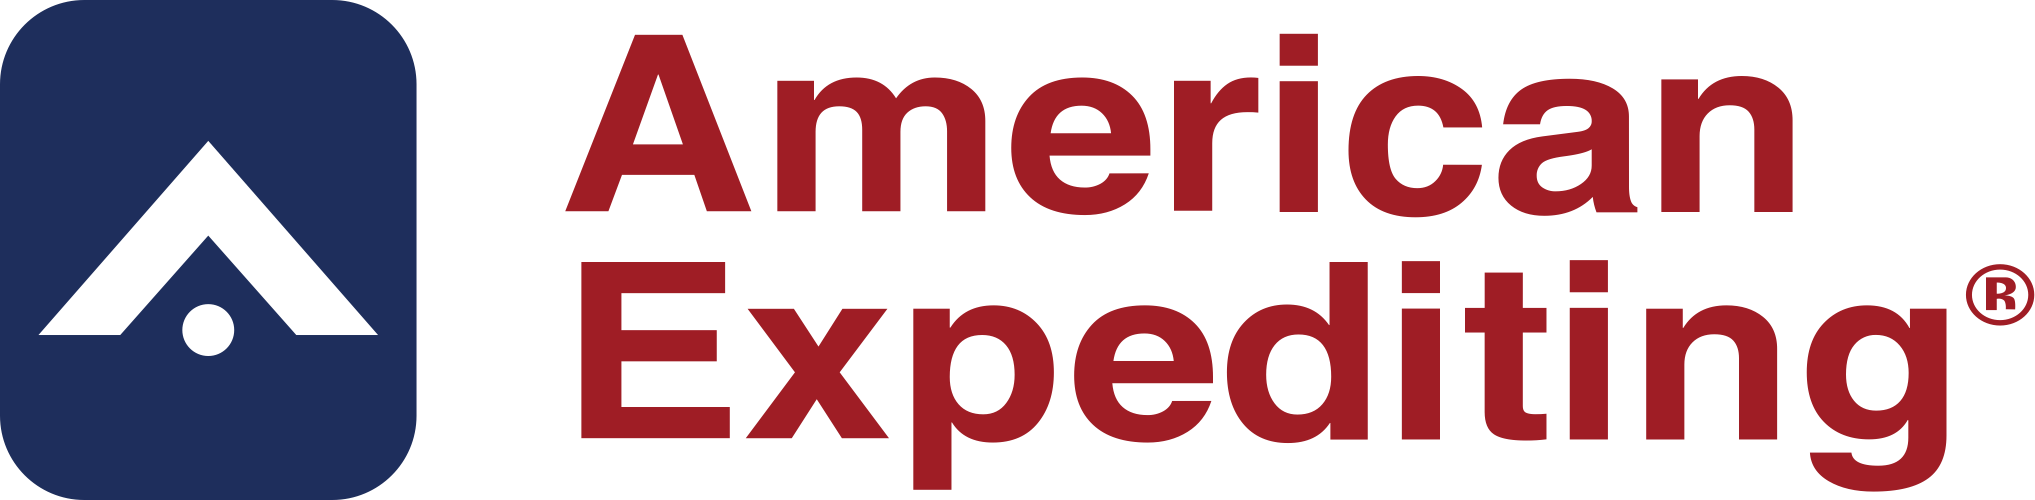 American Expediting